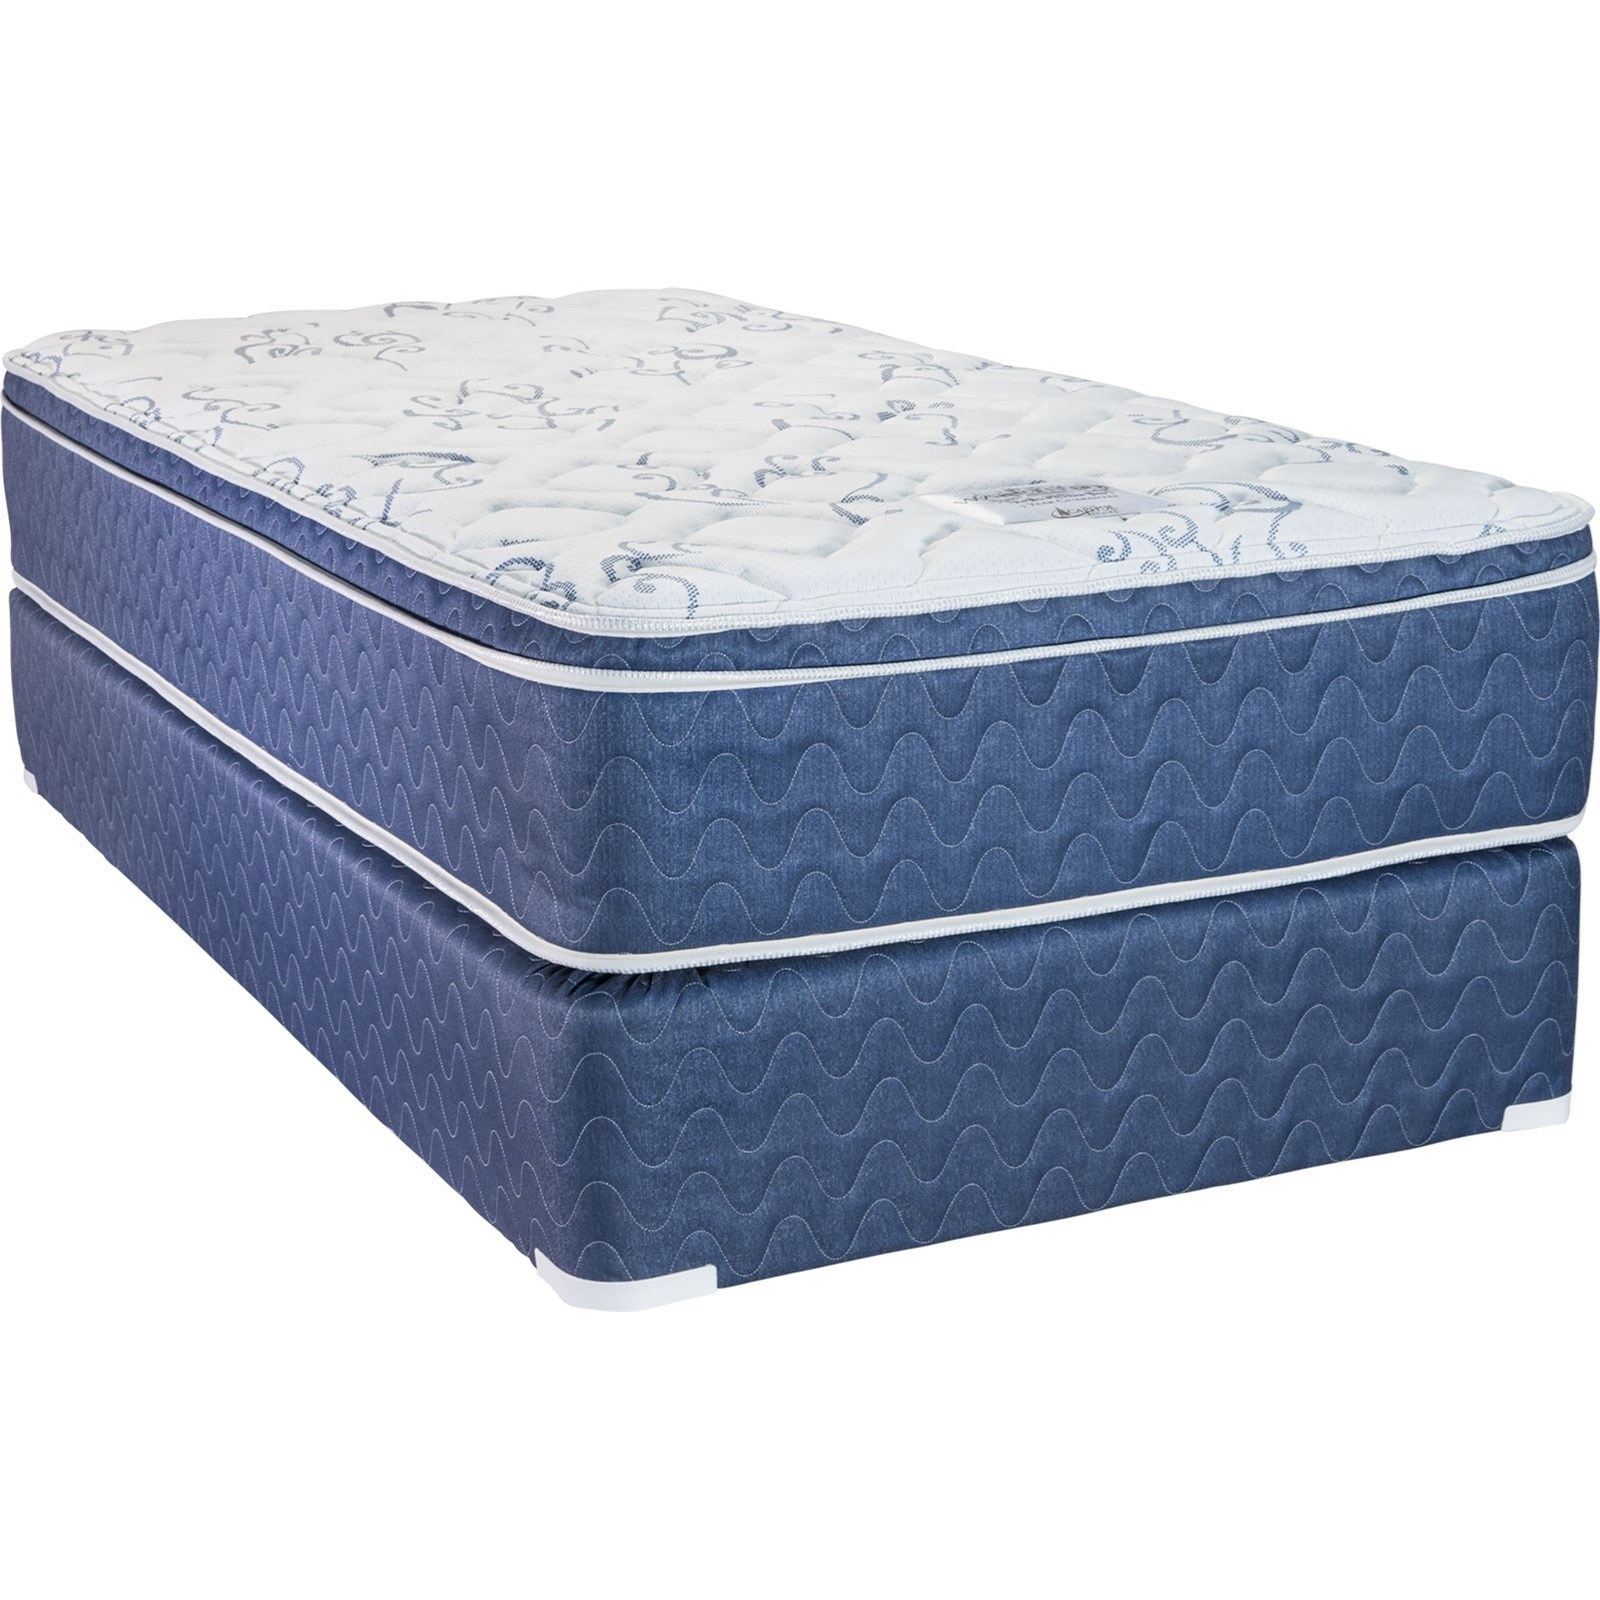 Low Profile Innerspring Mattress Capitol Bedding Warrenton Queen Innerspring Mattress And